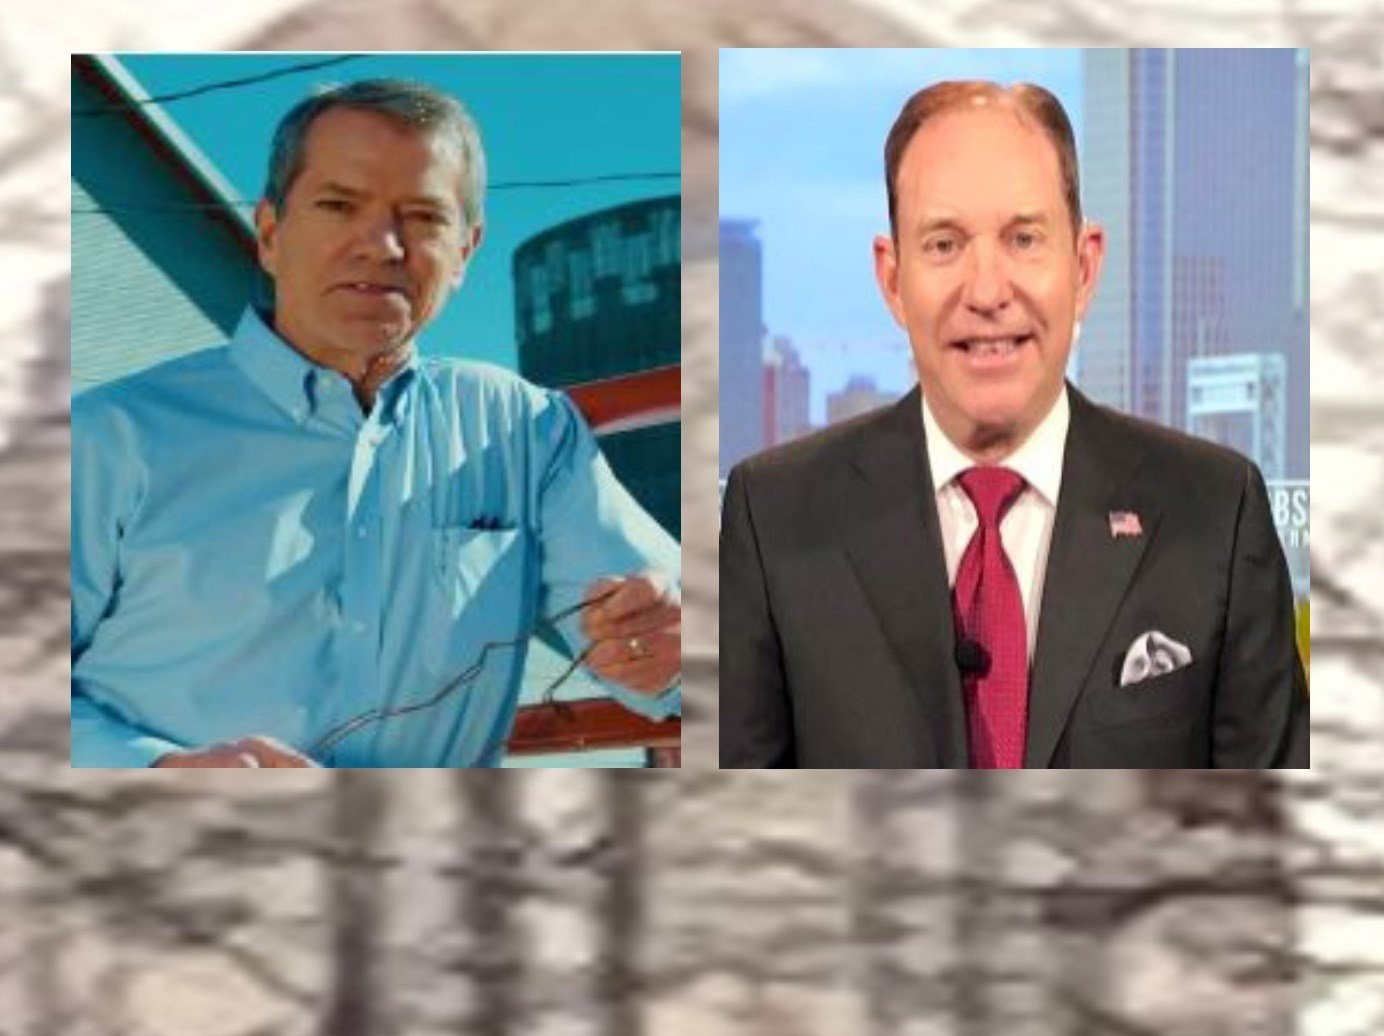 Lawmakers react to Herbster  critique on candidate Pillen